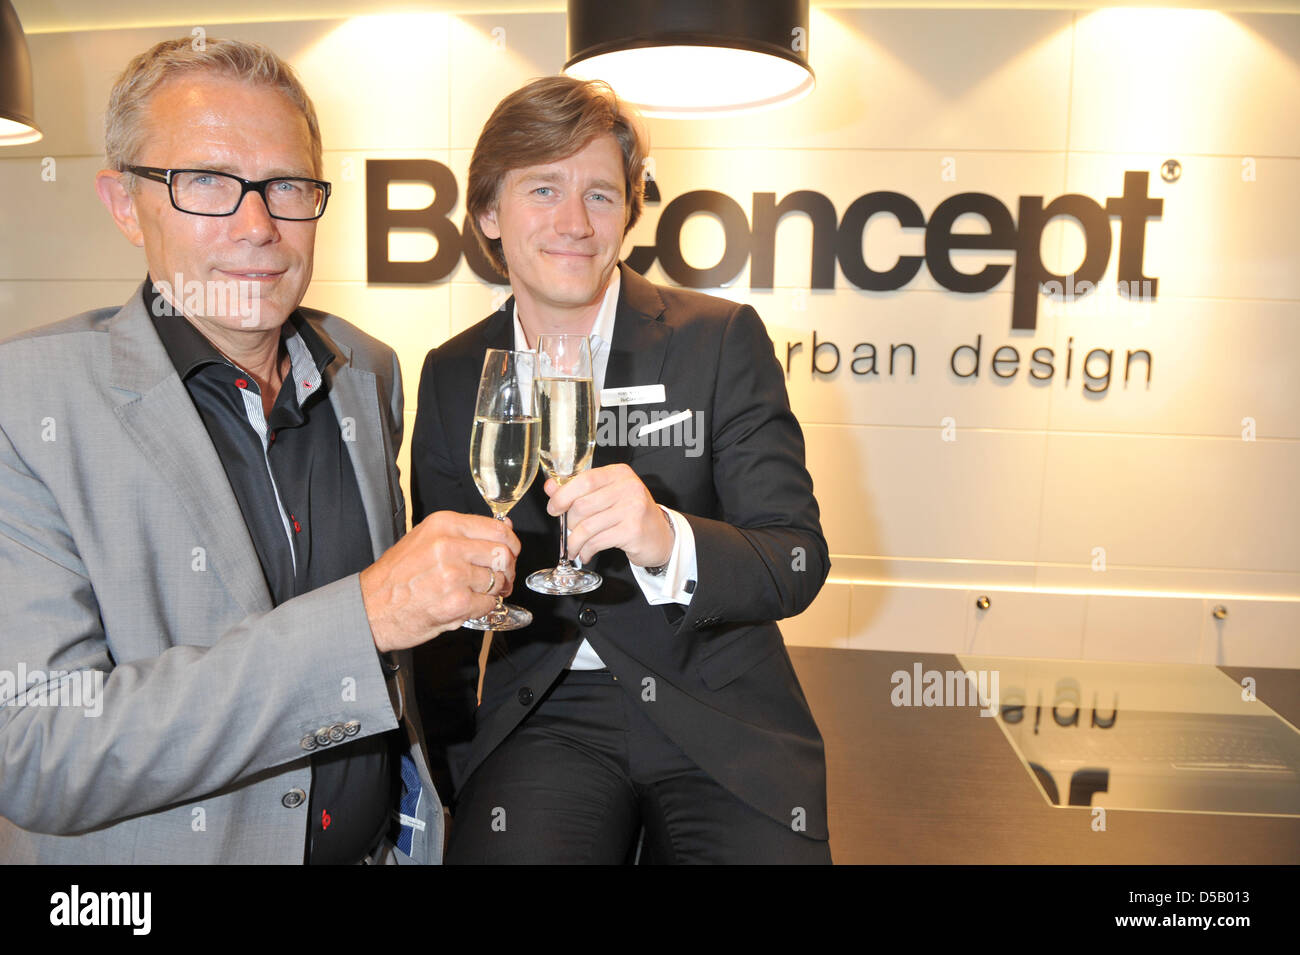 Boconcept München the picture features viggo molholm l president and chief